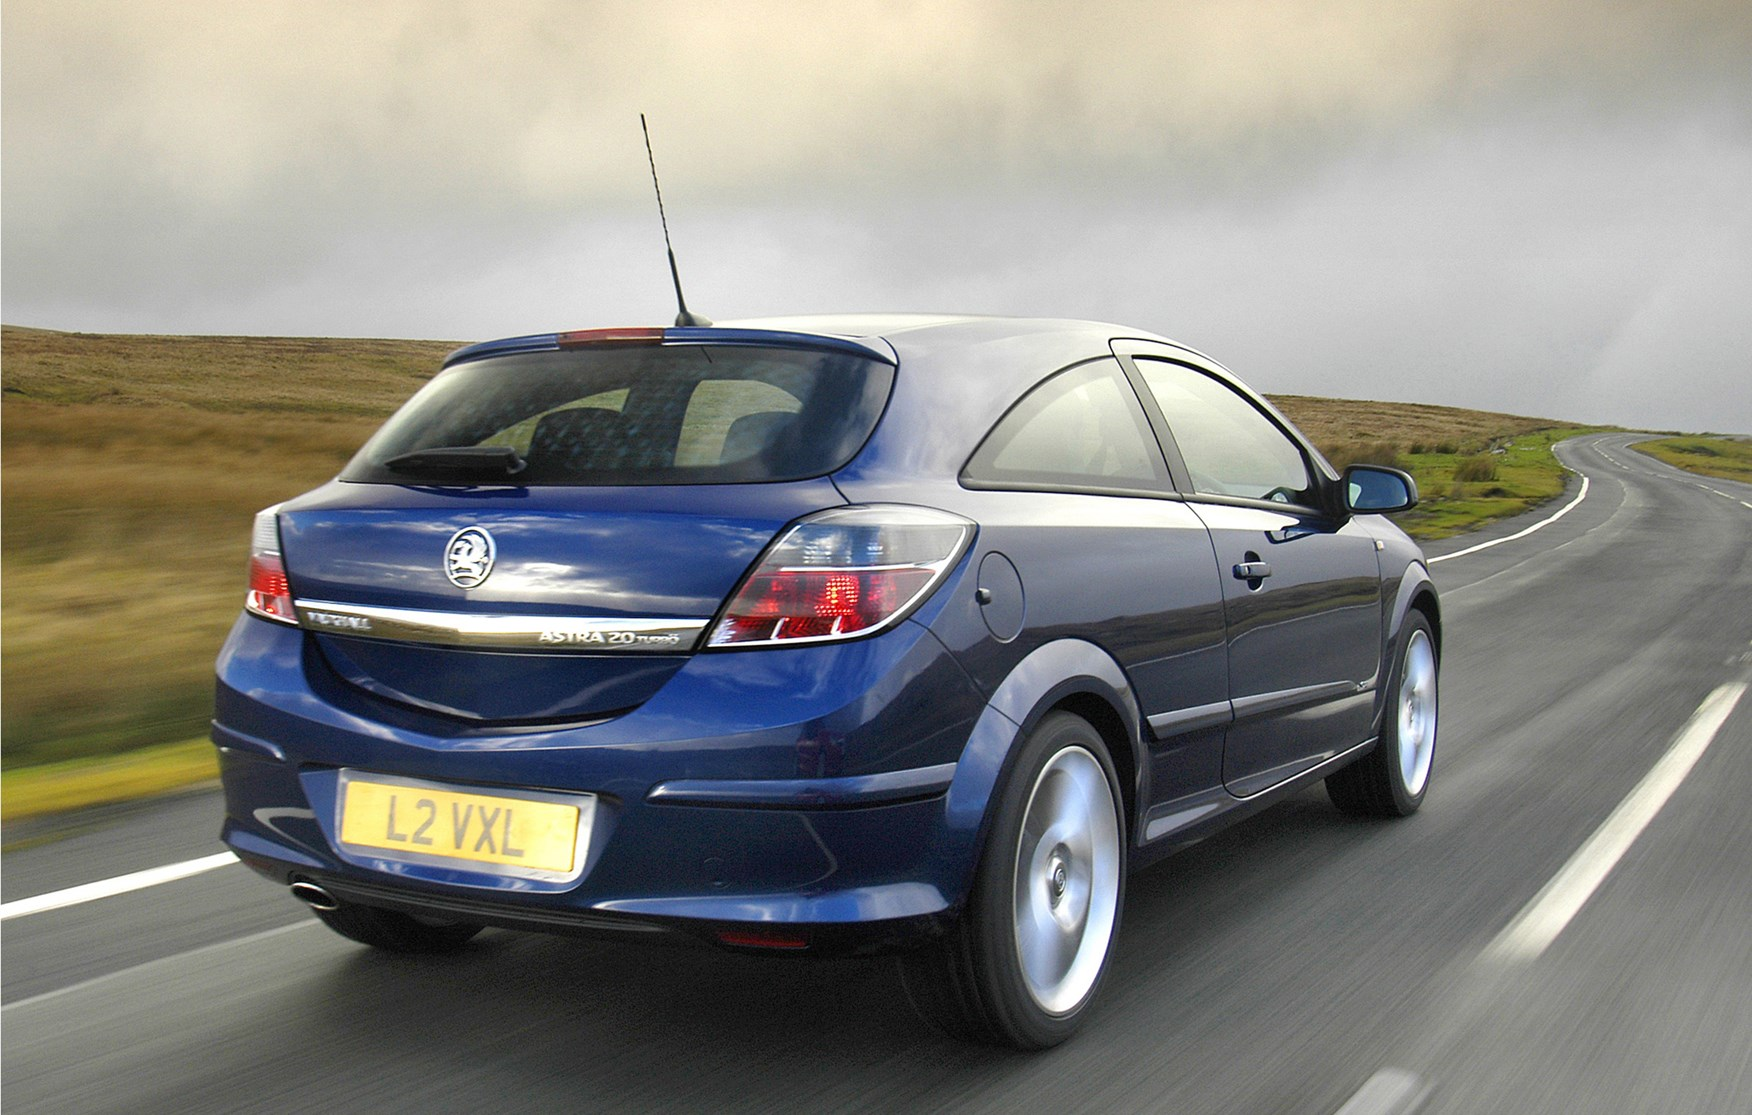 Great View All Images Of The Vauxhall Astra Sport Hatch (05 10) Amazing Design